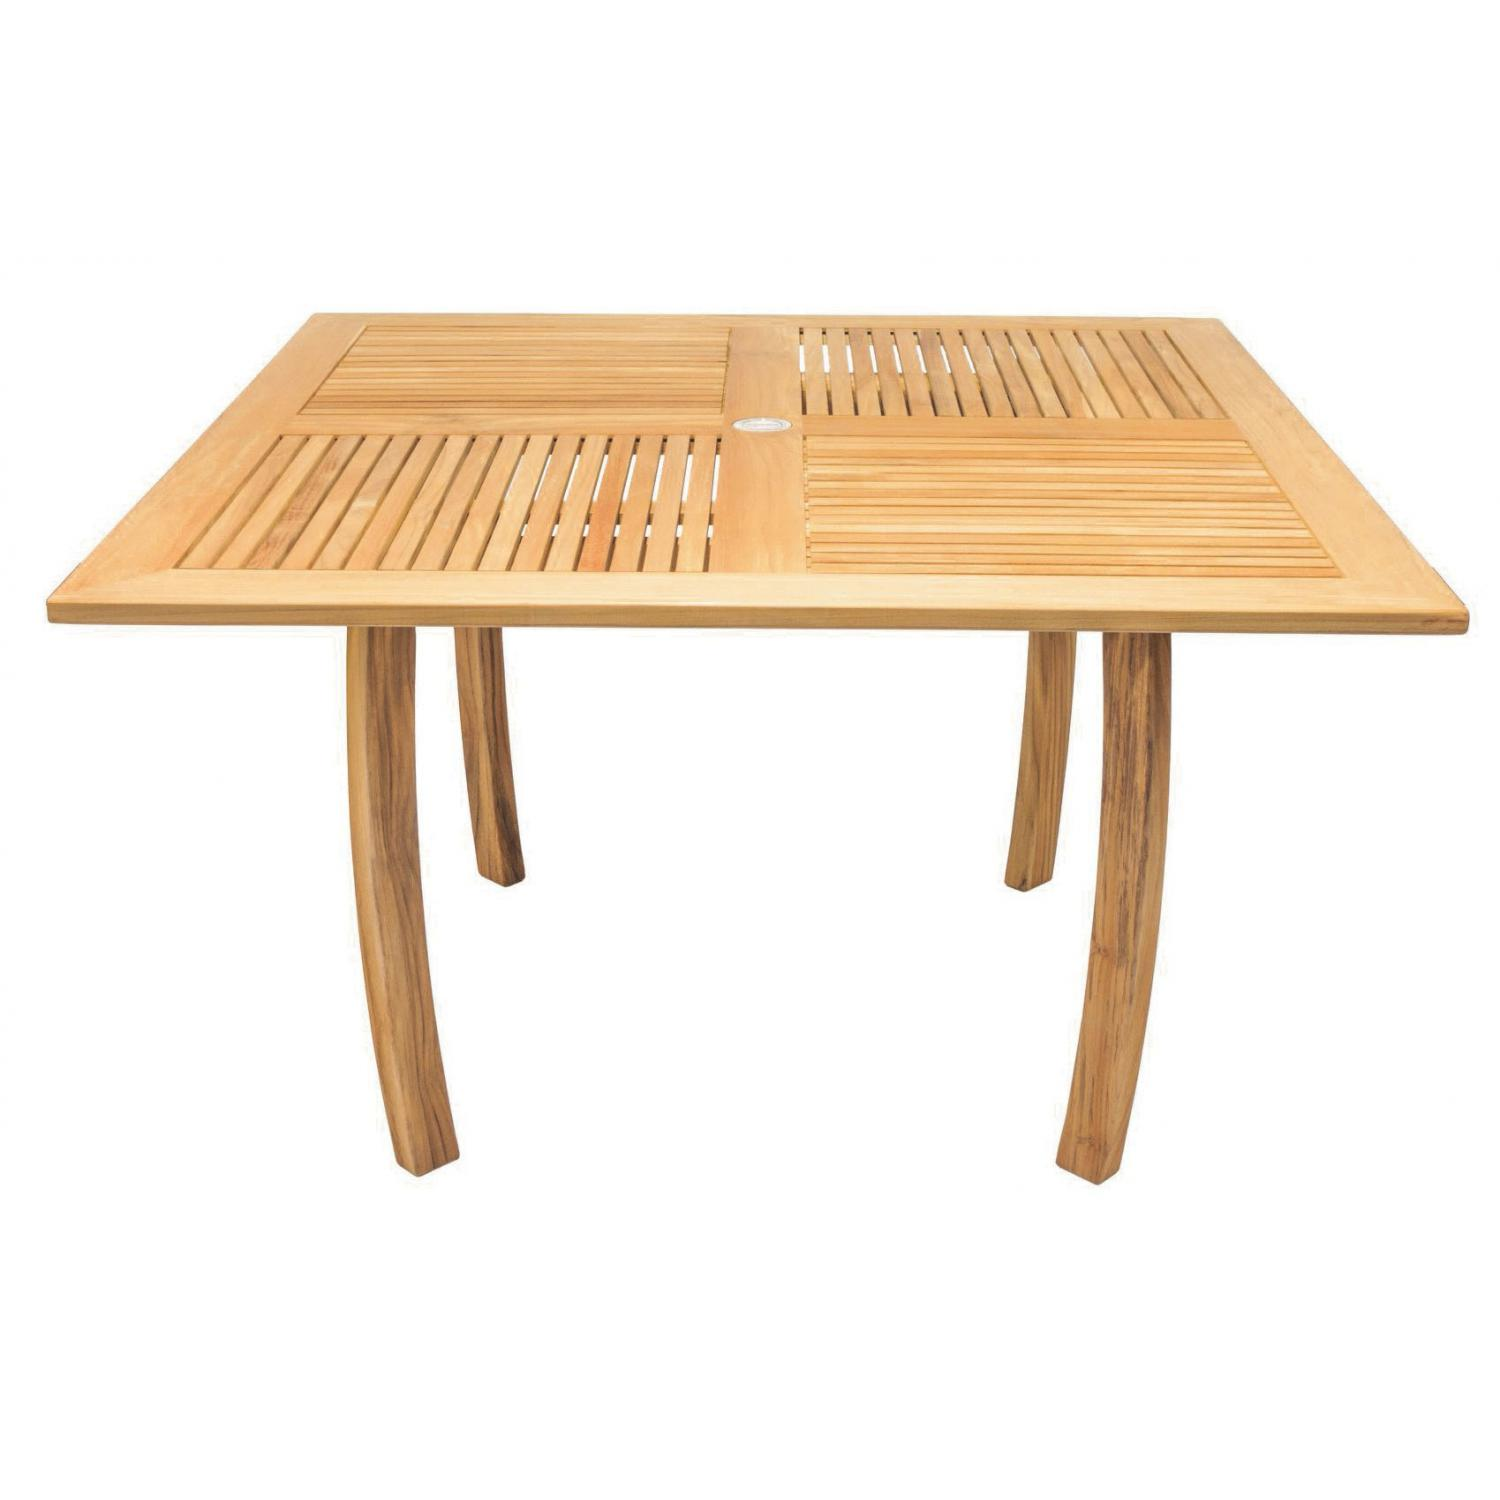 Dolphin 50 Inch Square Teak Patio Dining Table By Royal Teak